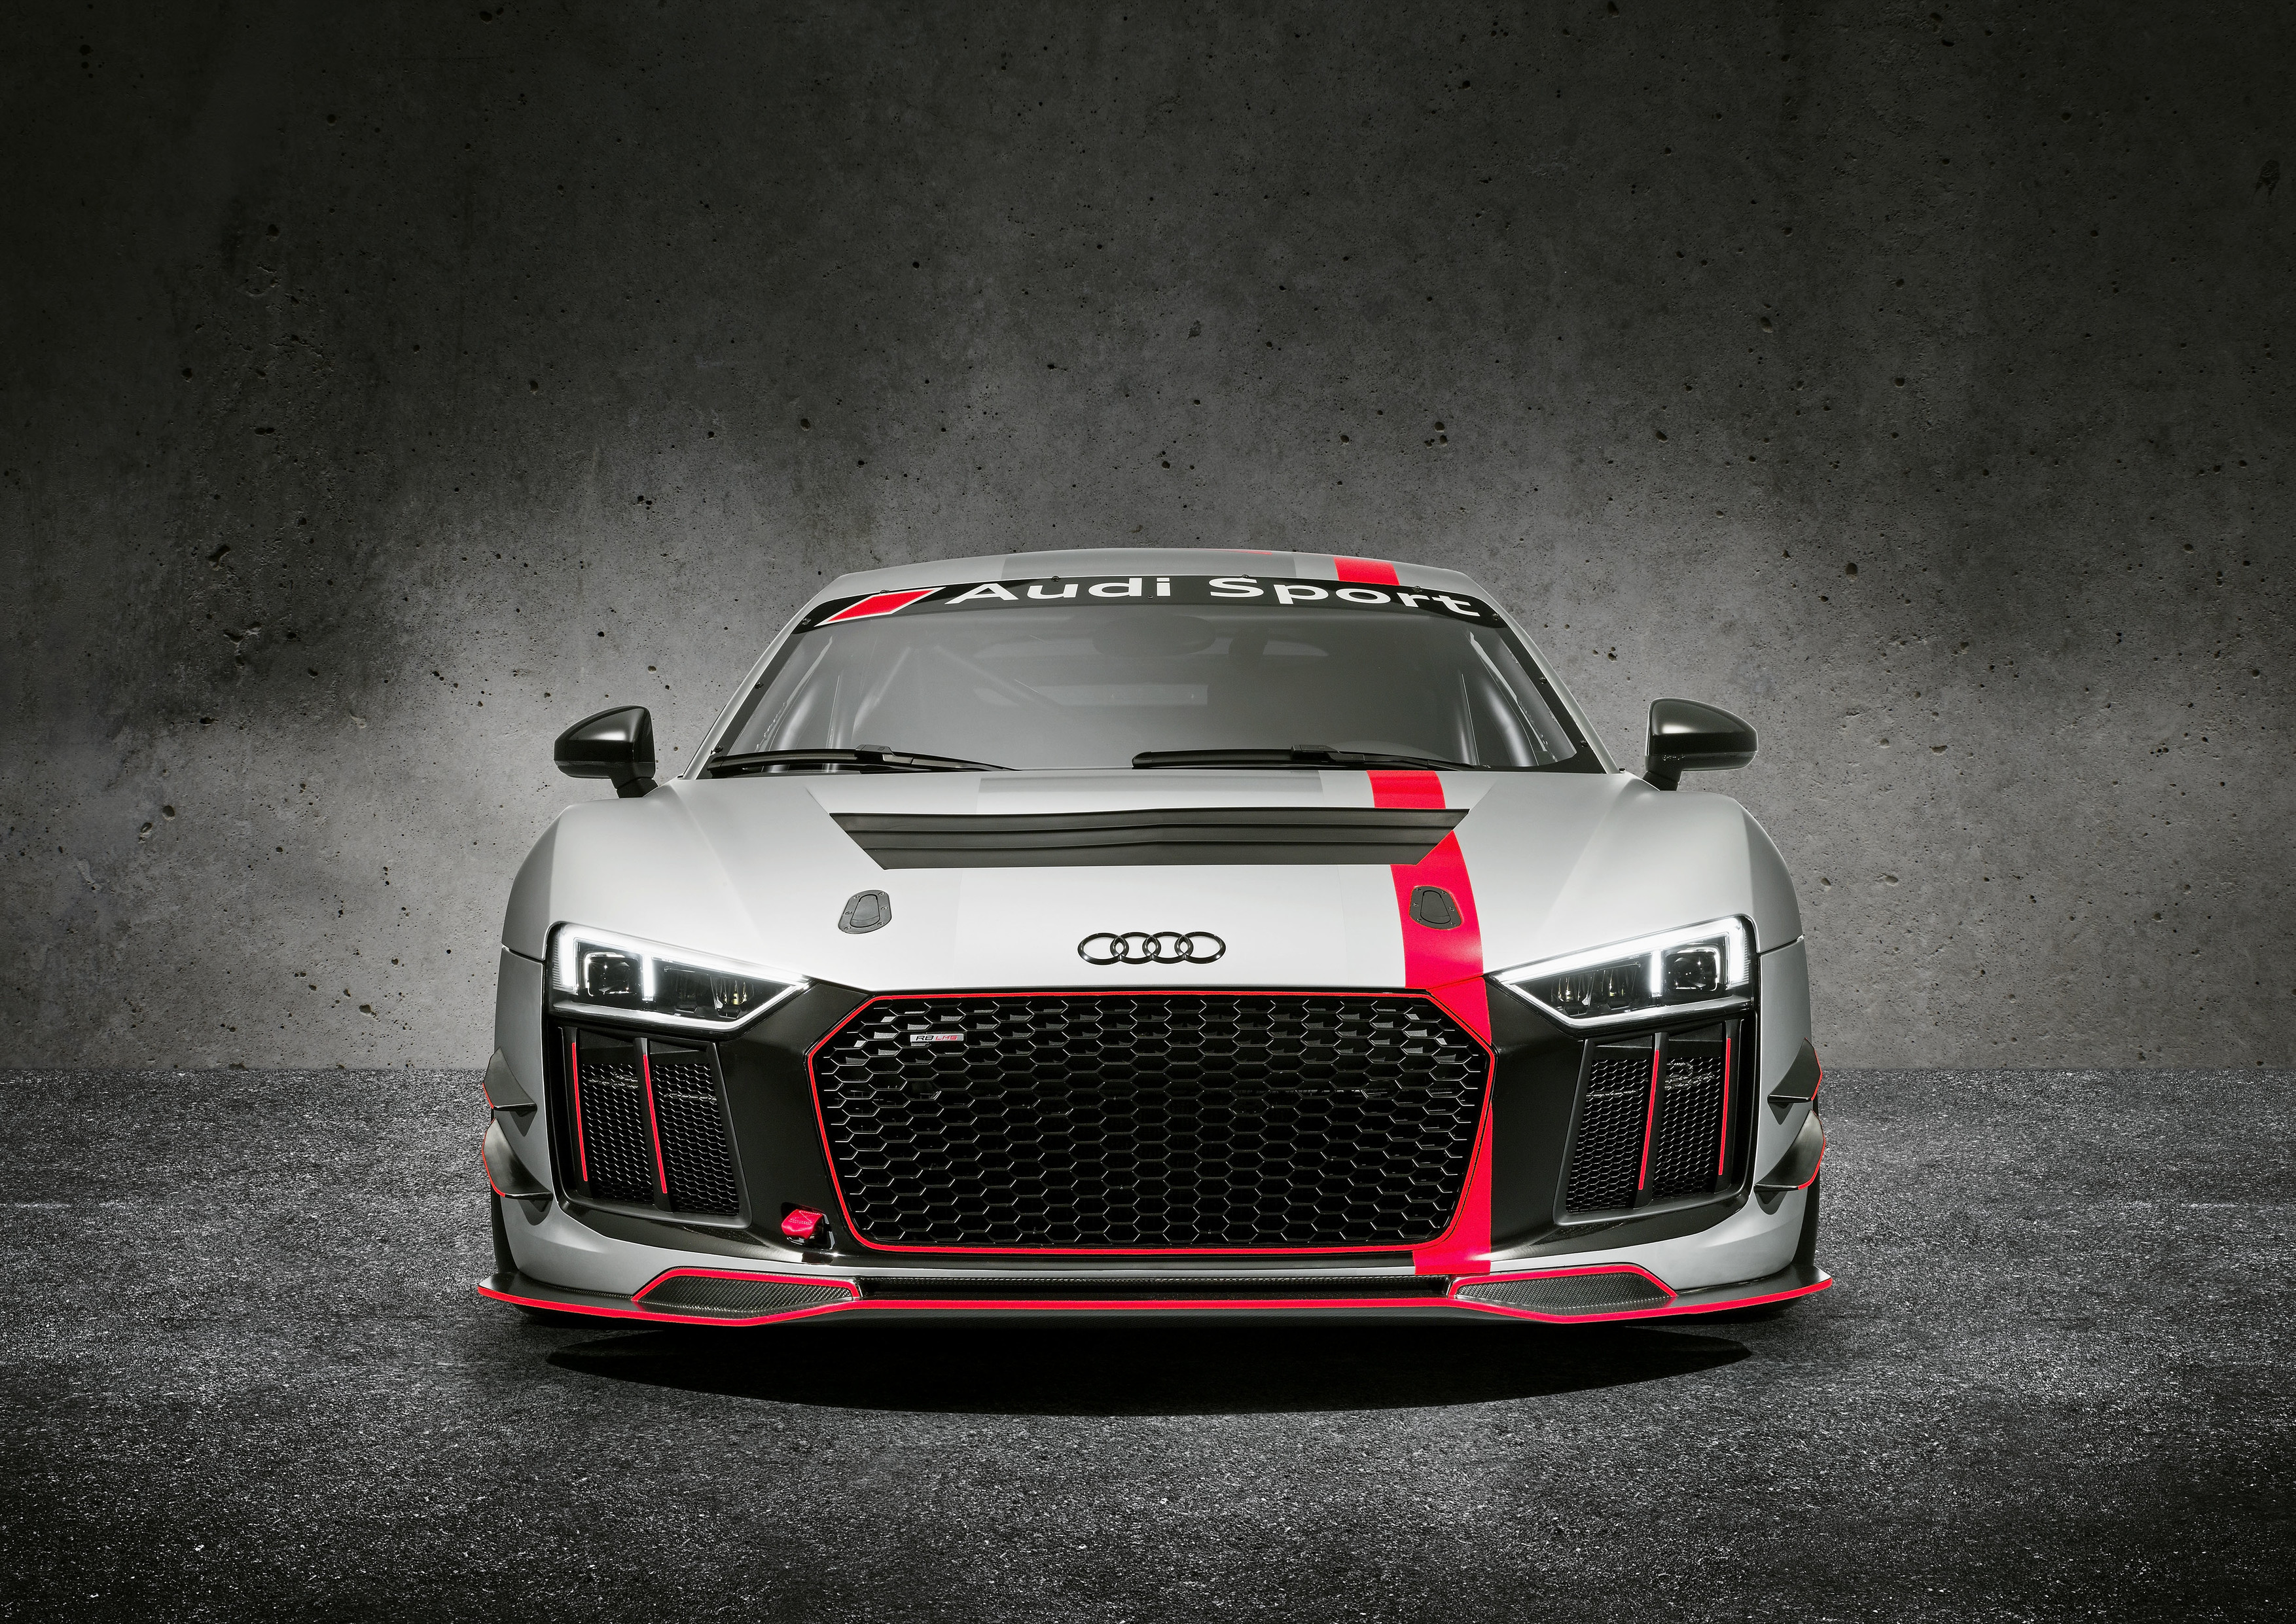 You Can Now Buy the Audi R8 LMS GT4